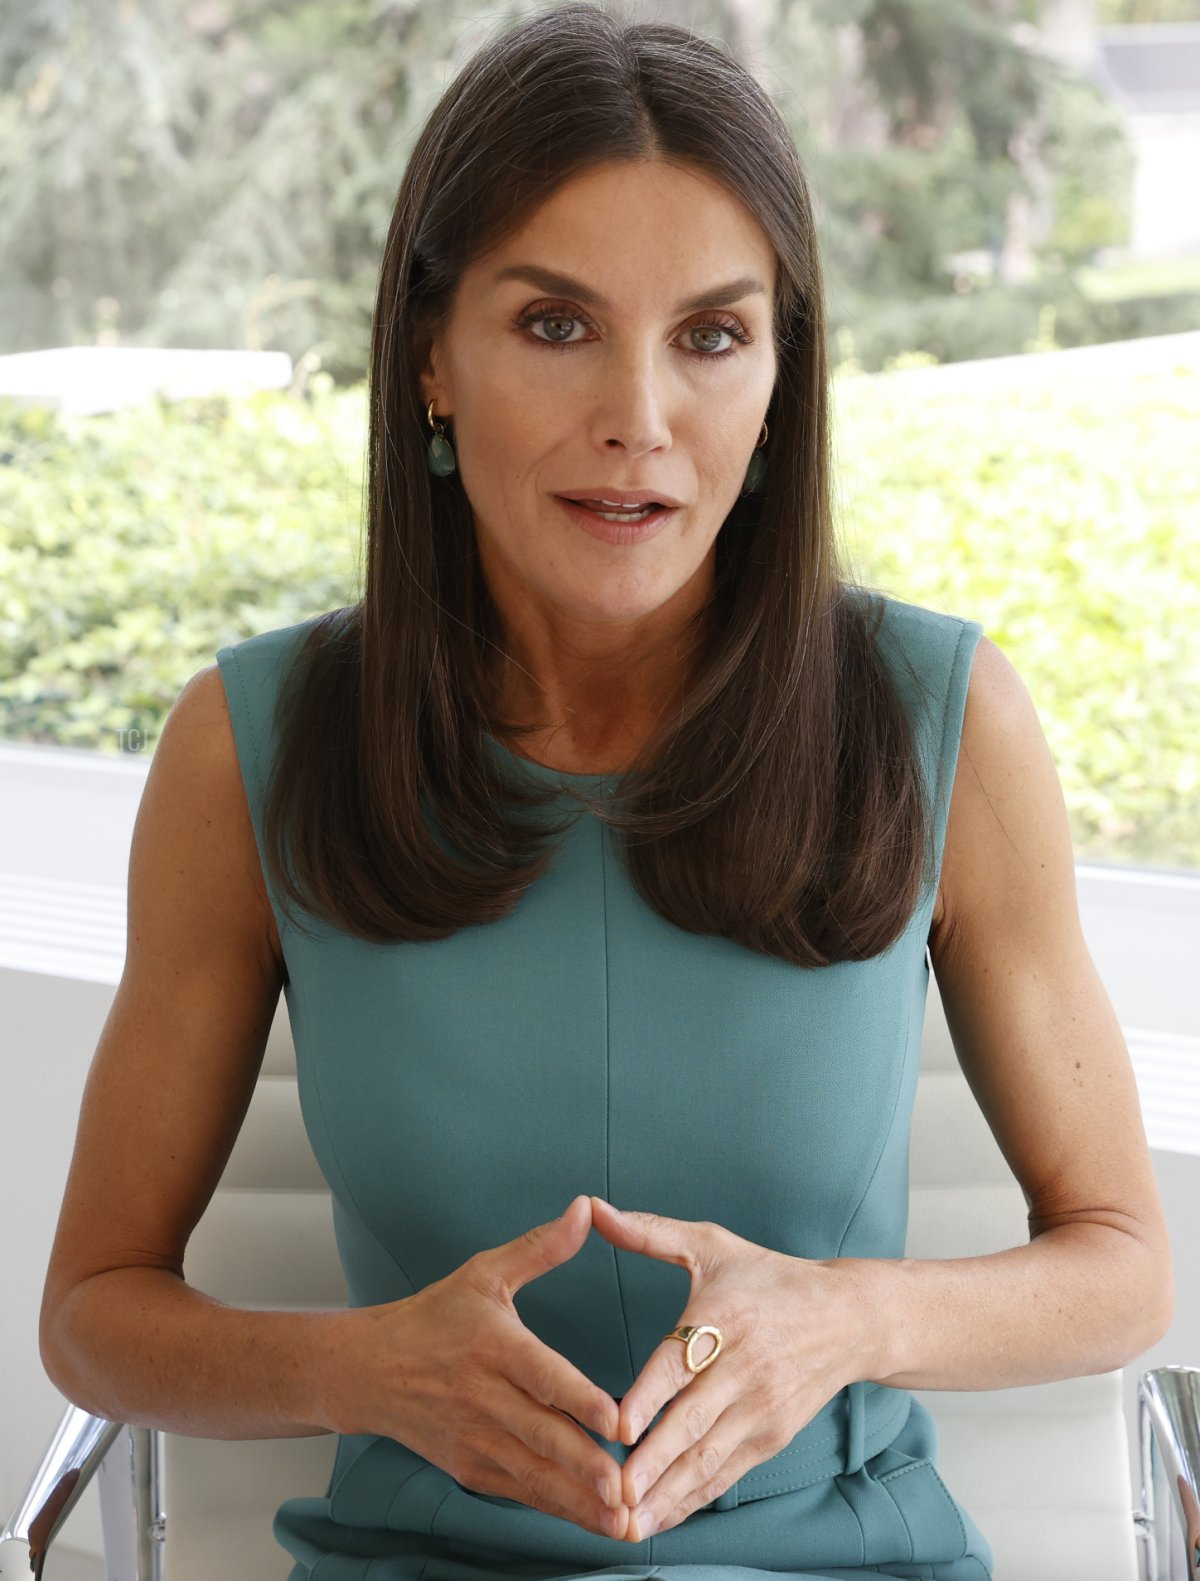 Queen Letizia of Spain speaks on a digital intervention at United Nations High Level Forum about the challenges of people living with rare diseases, on July 07, 2021 in Madrid, Spain